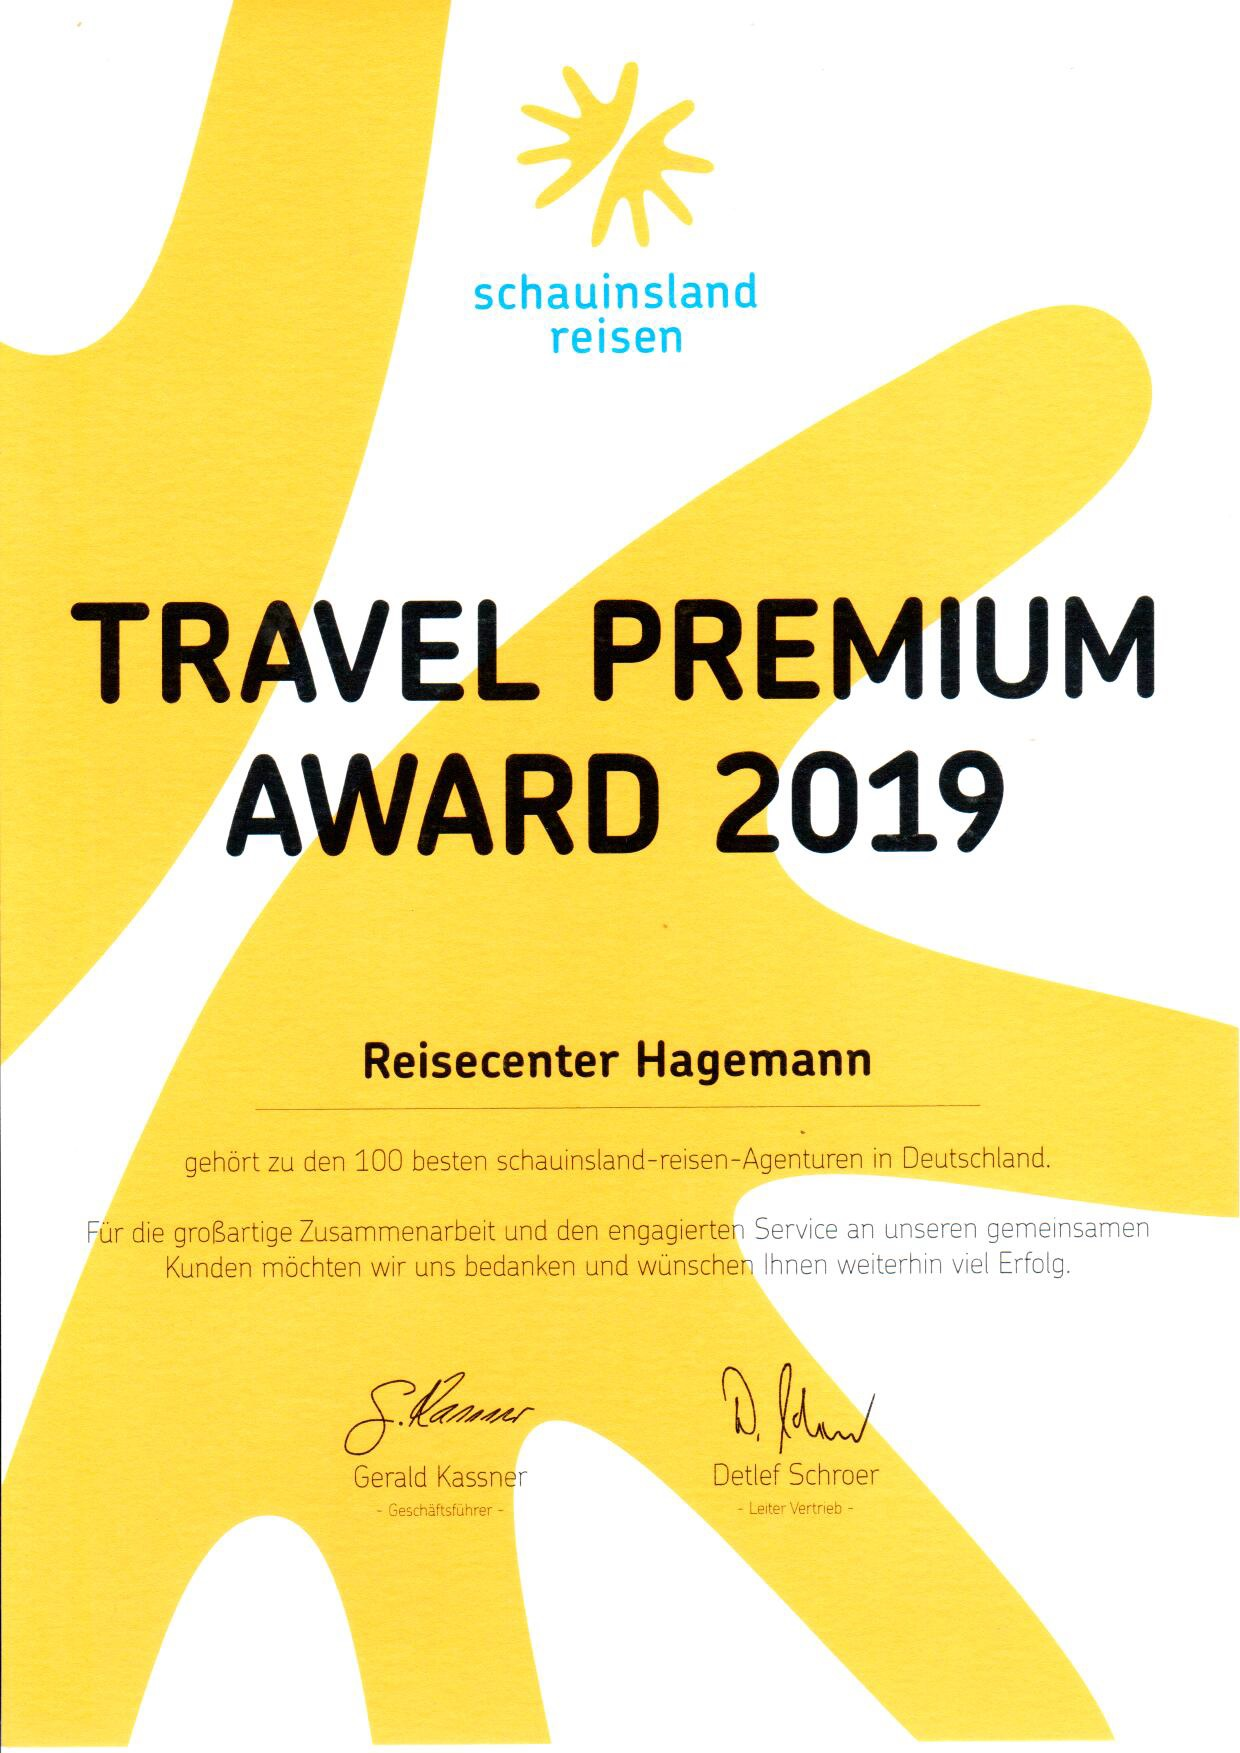 SLR 2019 Travel Premium Award